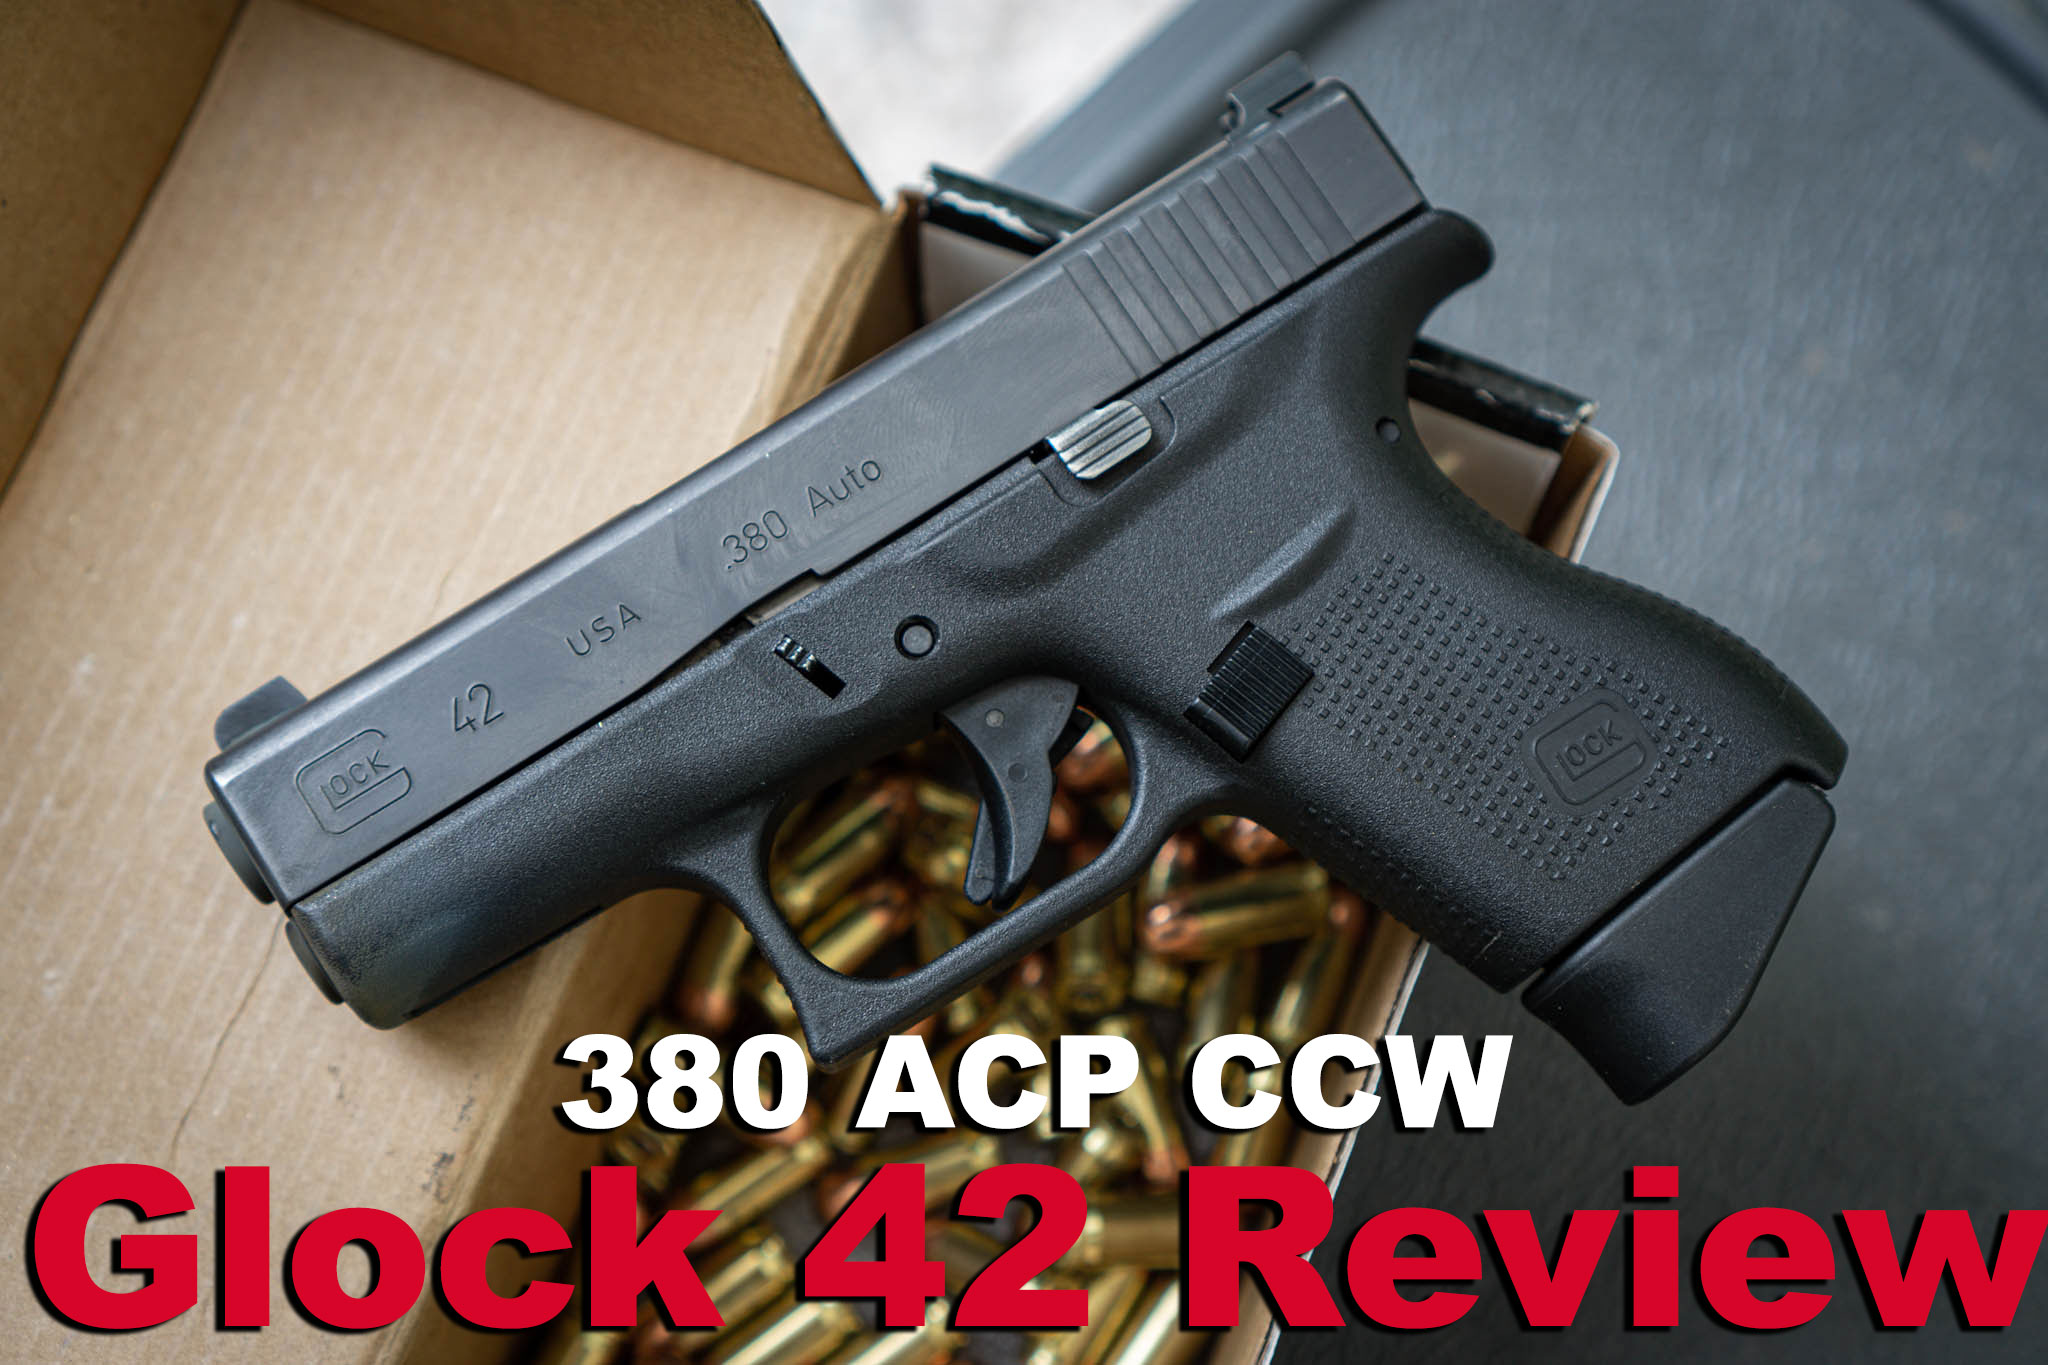 Glock 42 review pistol with box of ammo